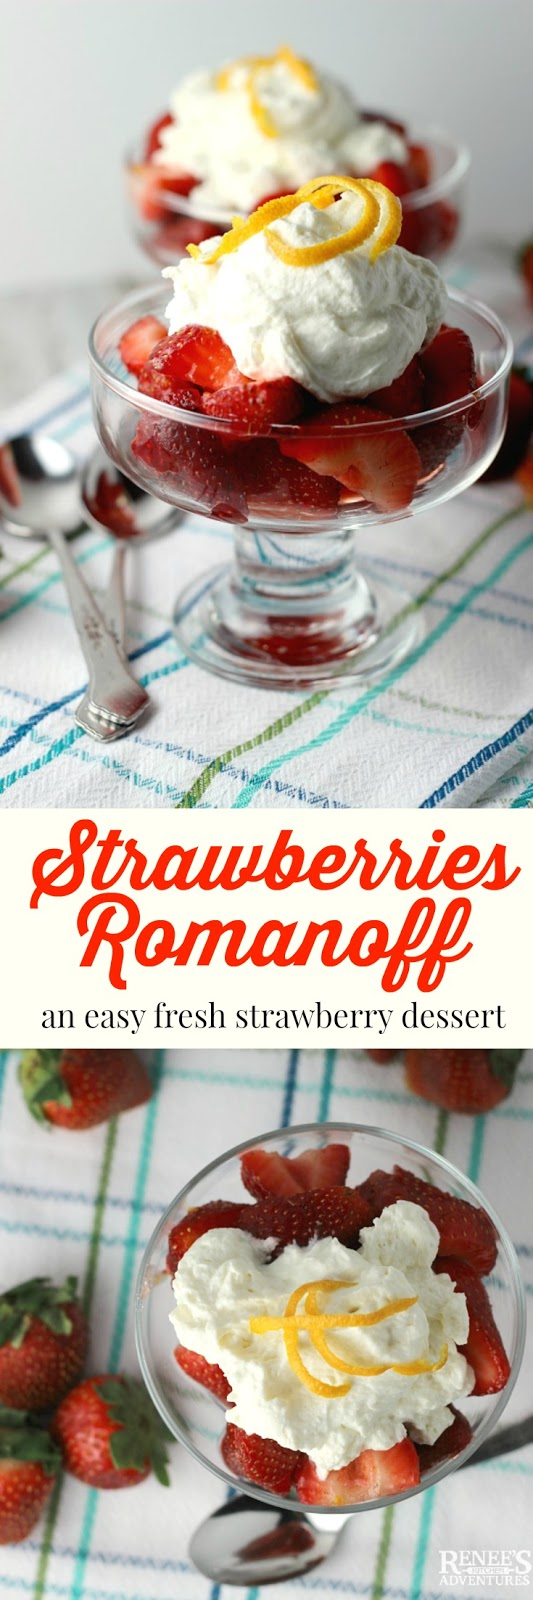 Strawberries Romanoff | Renee's Kitchen Adventures